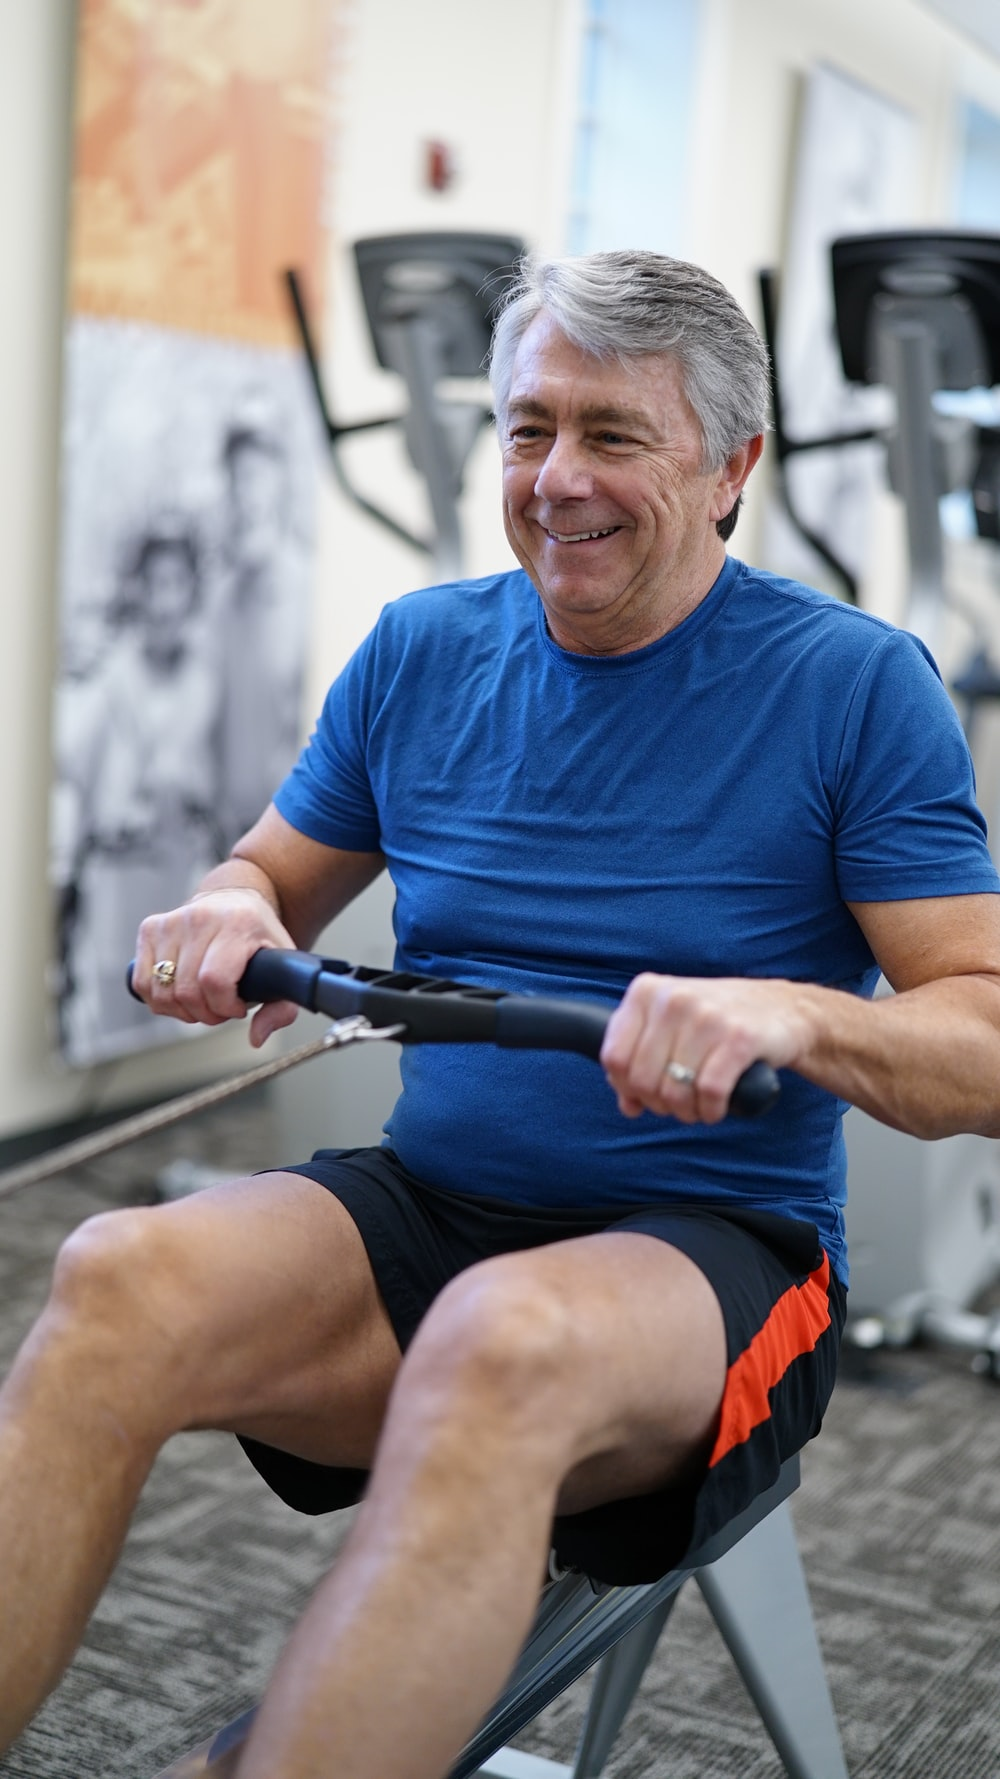 man exercising while smiling